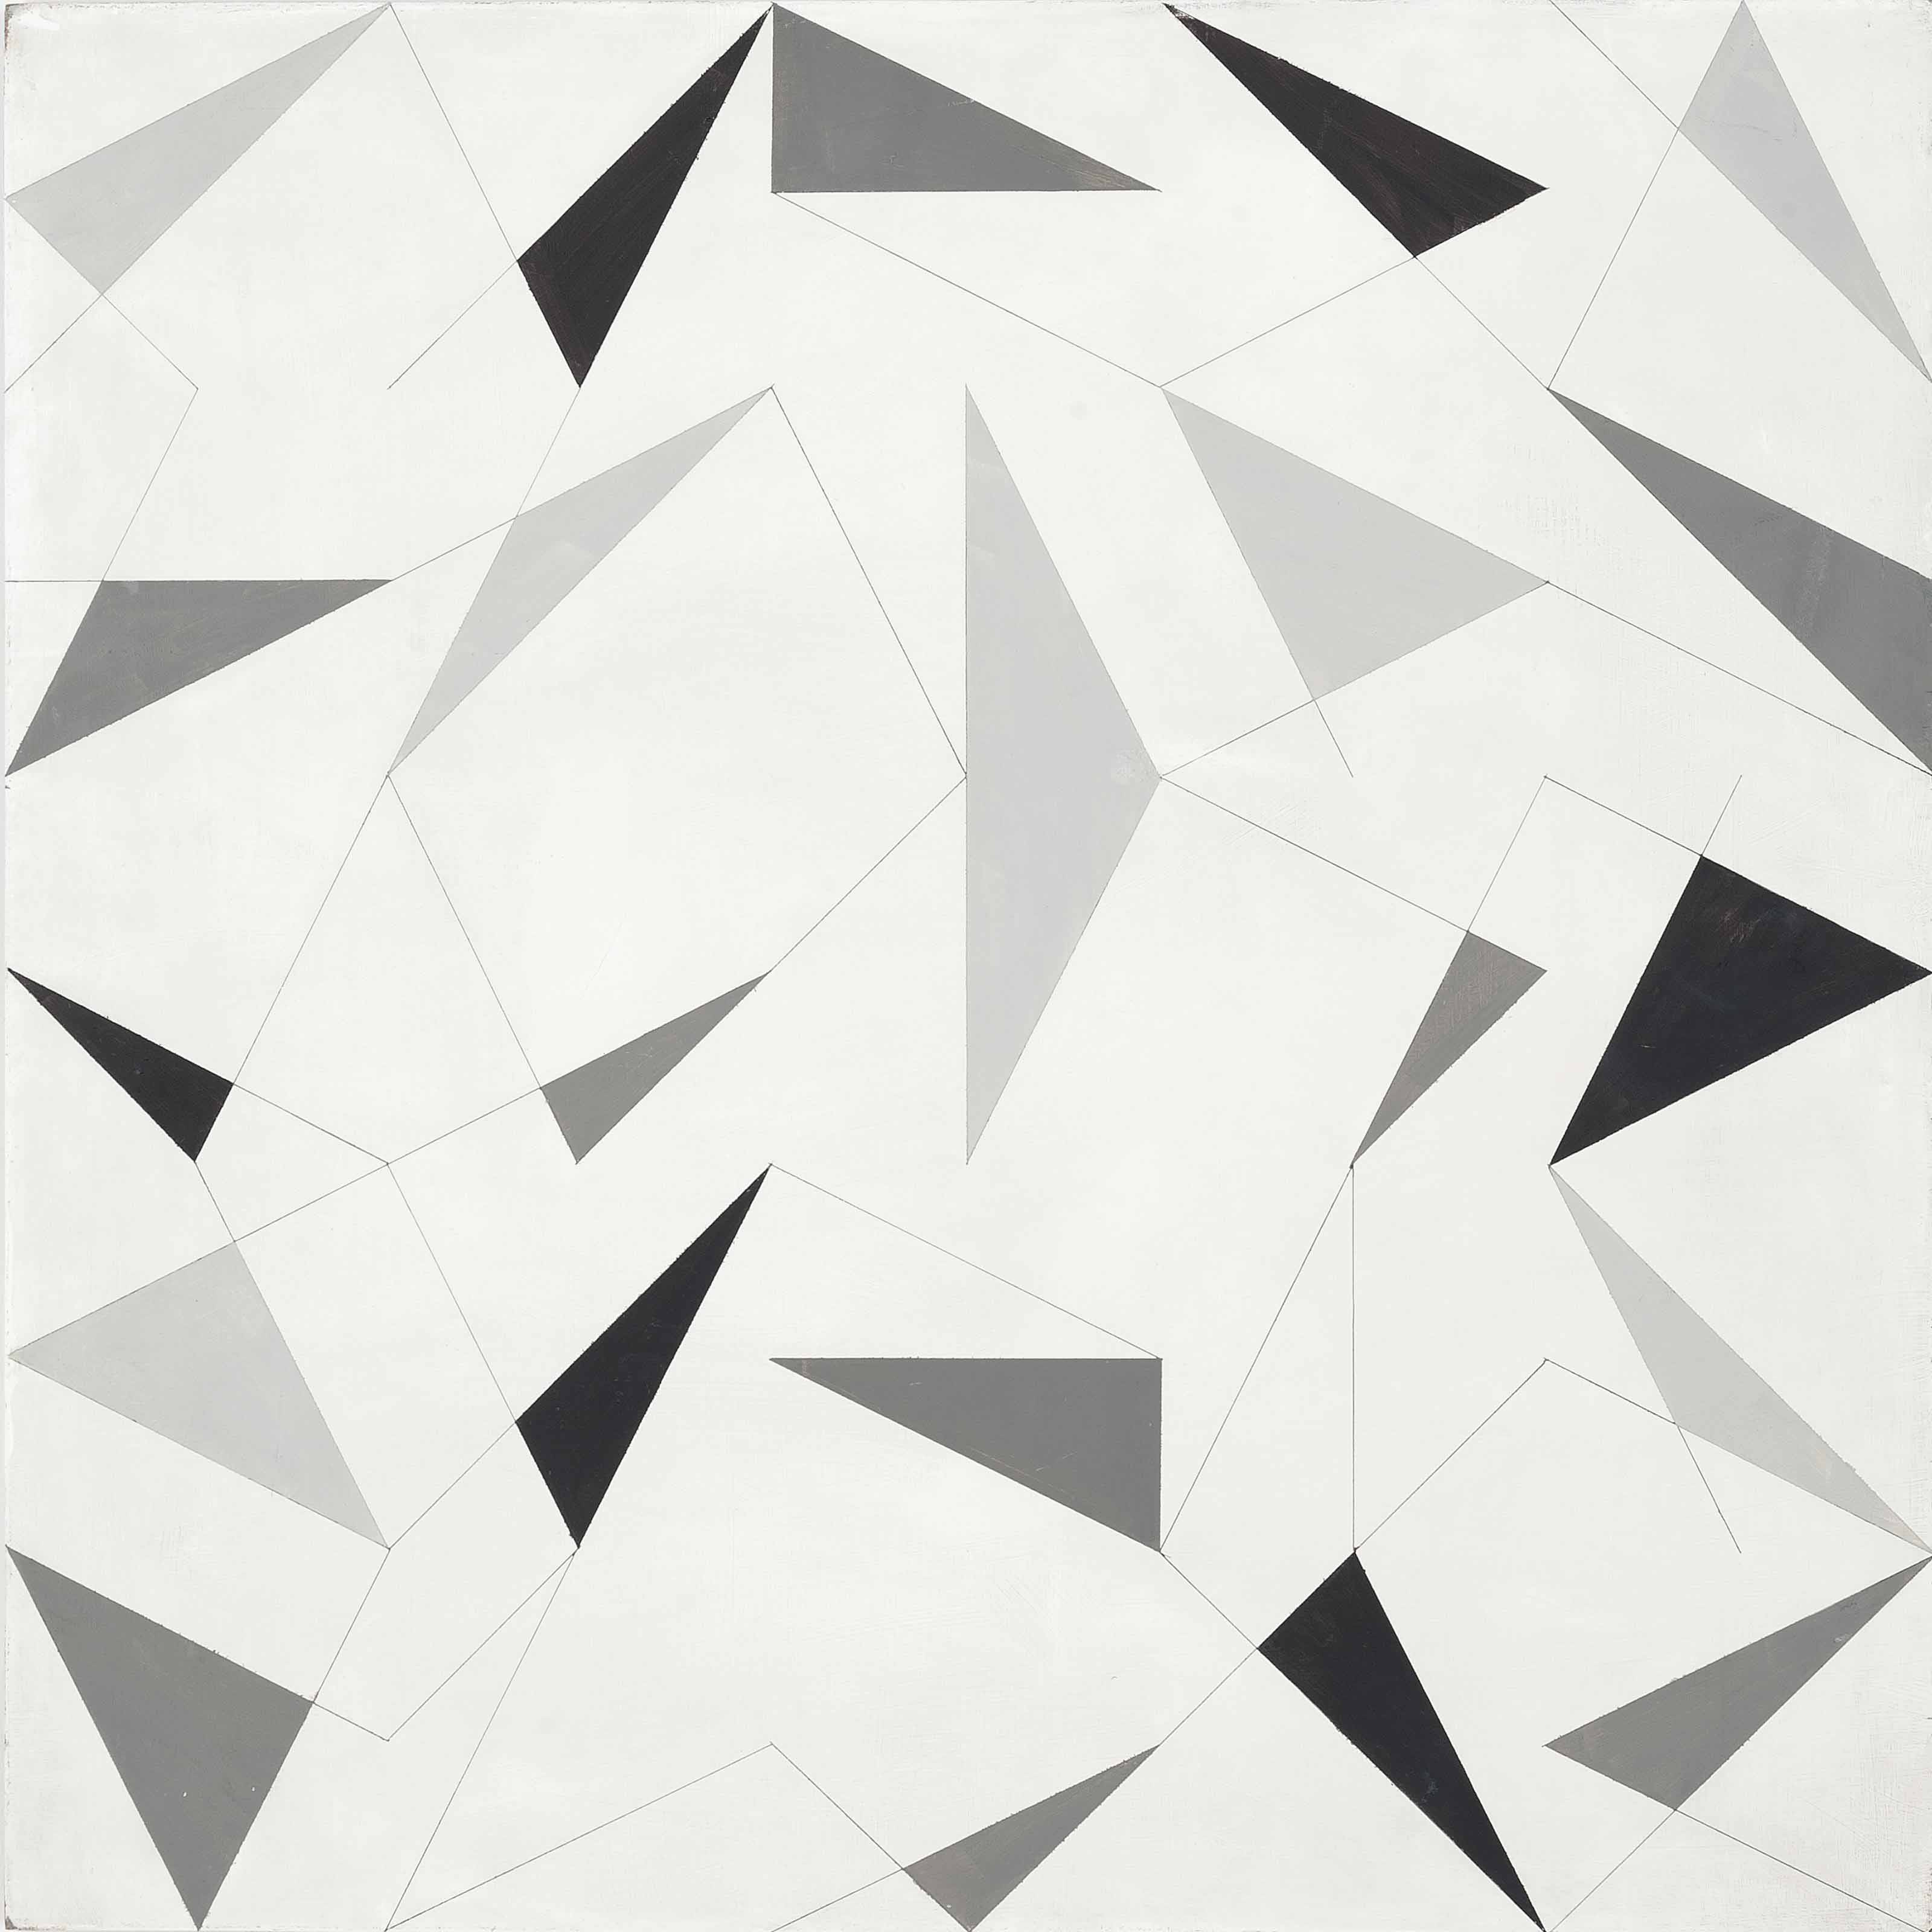 Composition with Grey Triangles